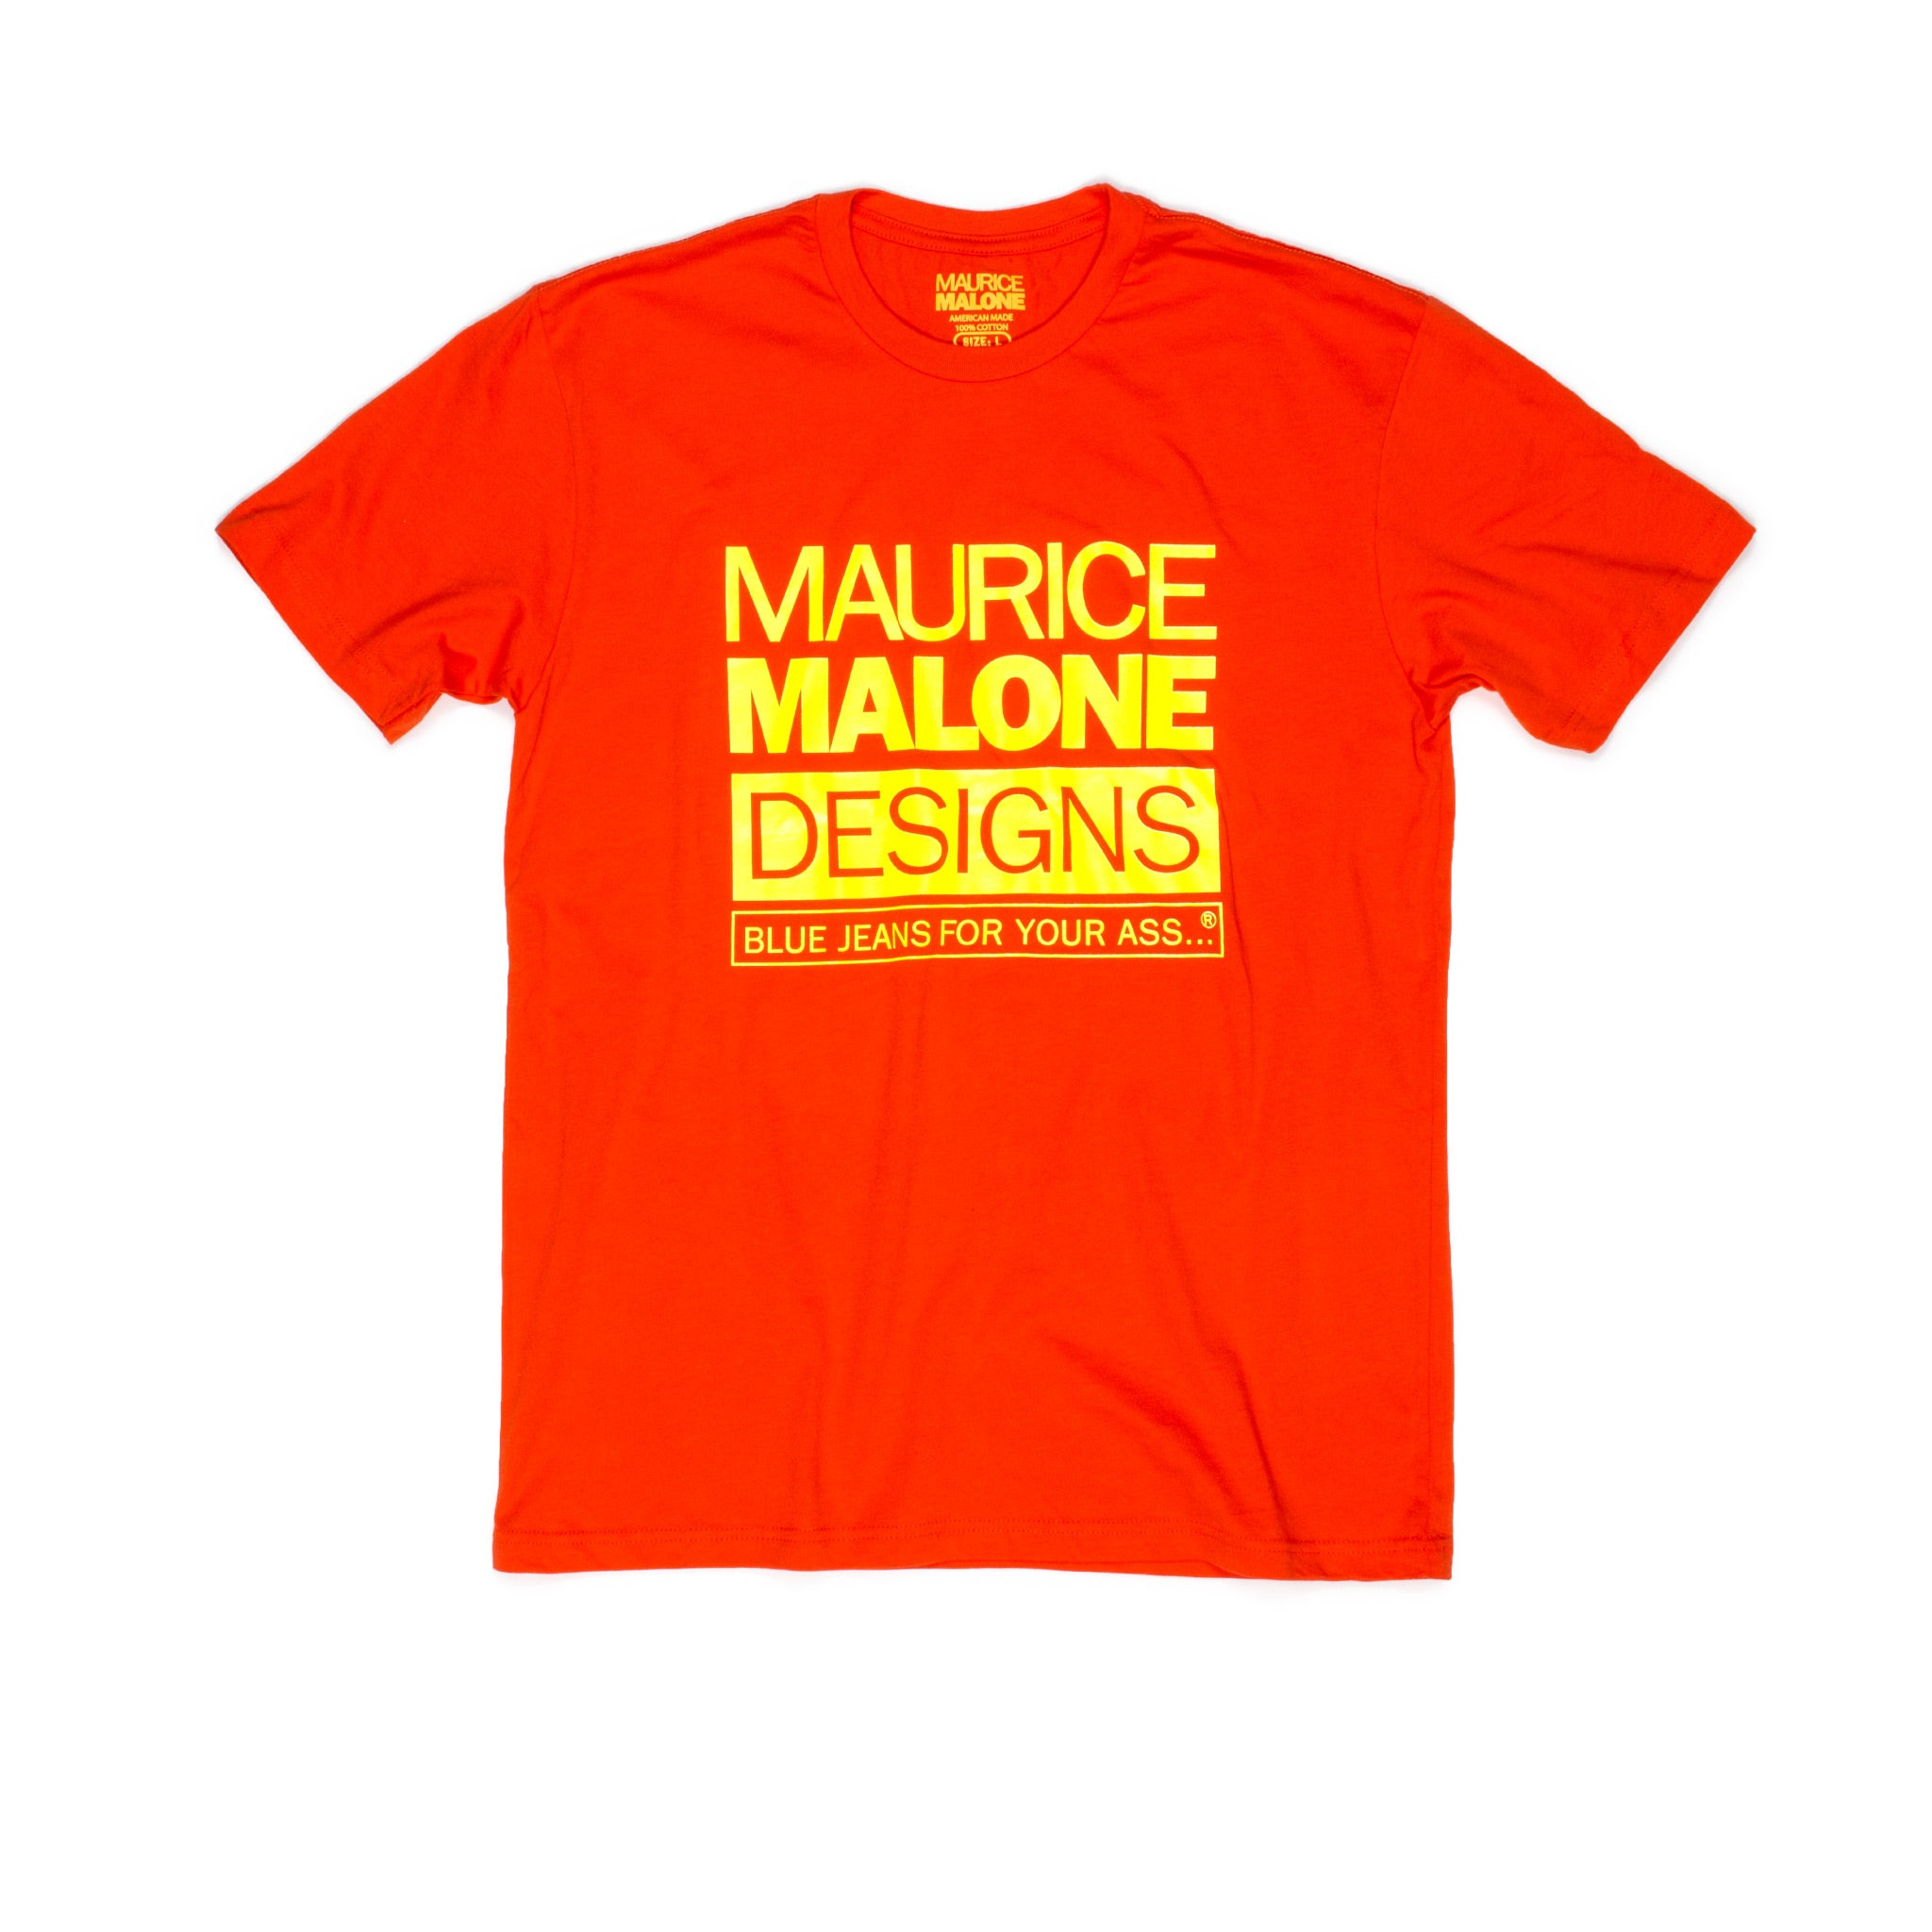 Hip Hop heritage orange fluorescent yellow logo Maurice Malone T-Shirt